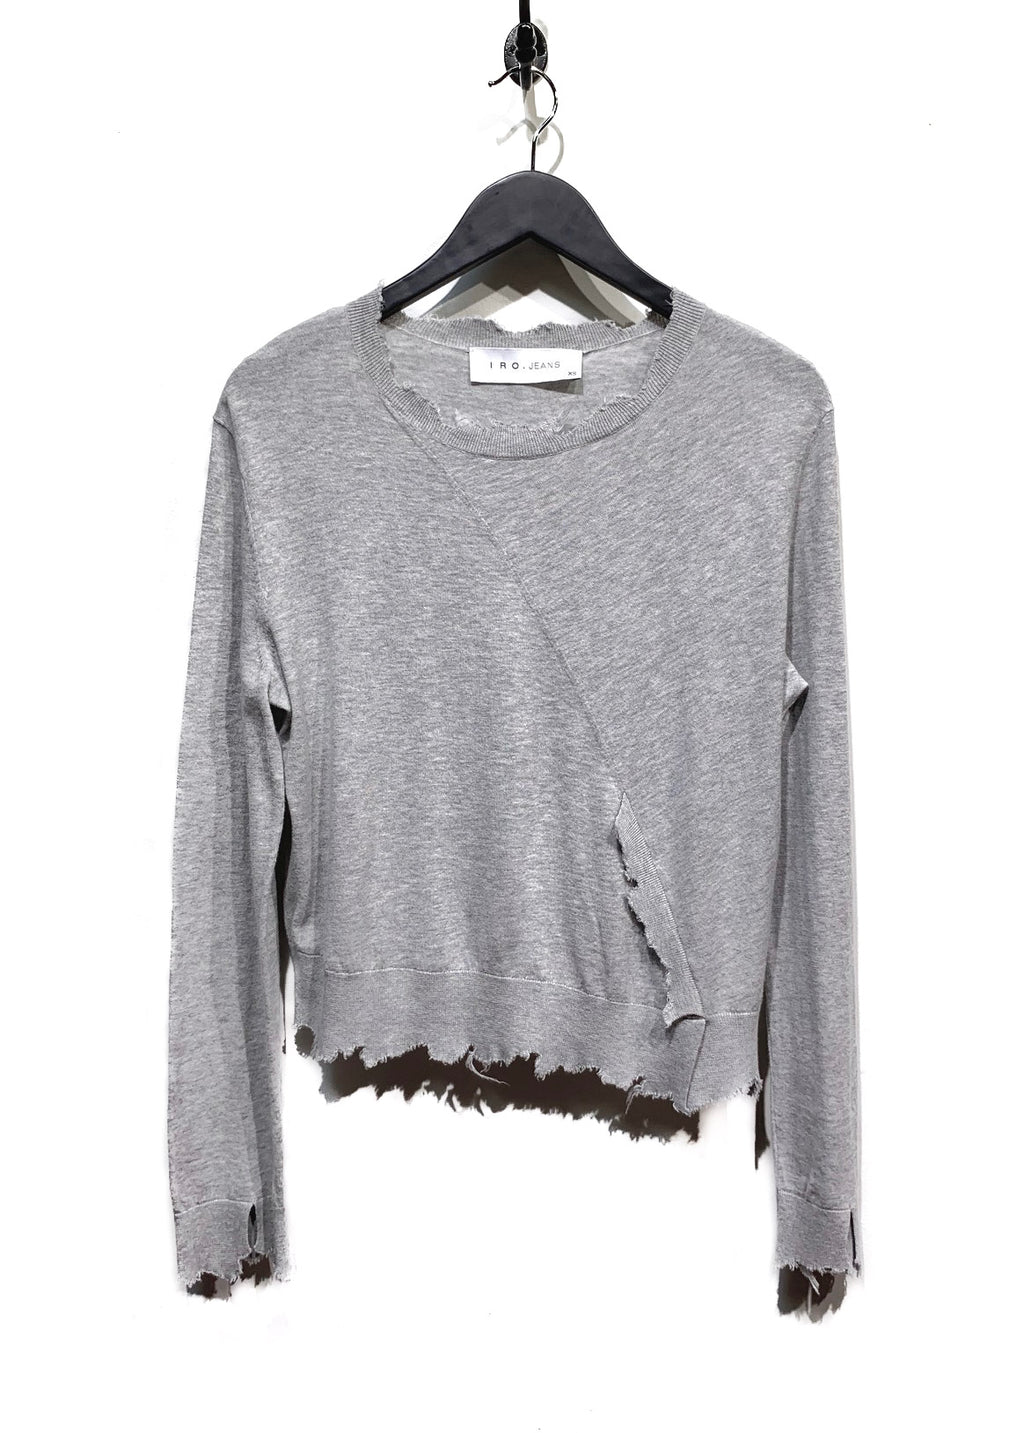 Iro Jeans Light Grey Destroyed Cotton Cashmere Sweater